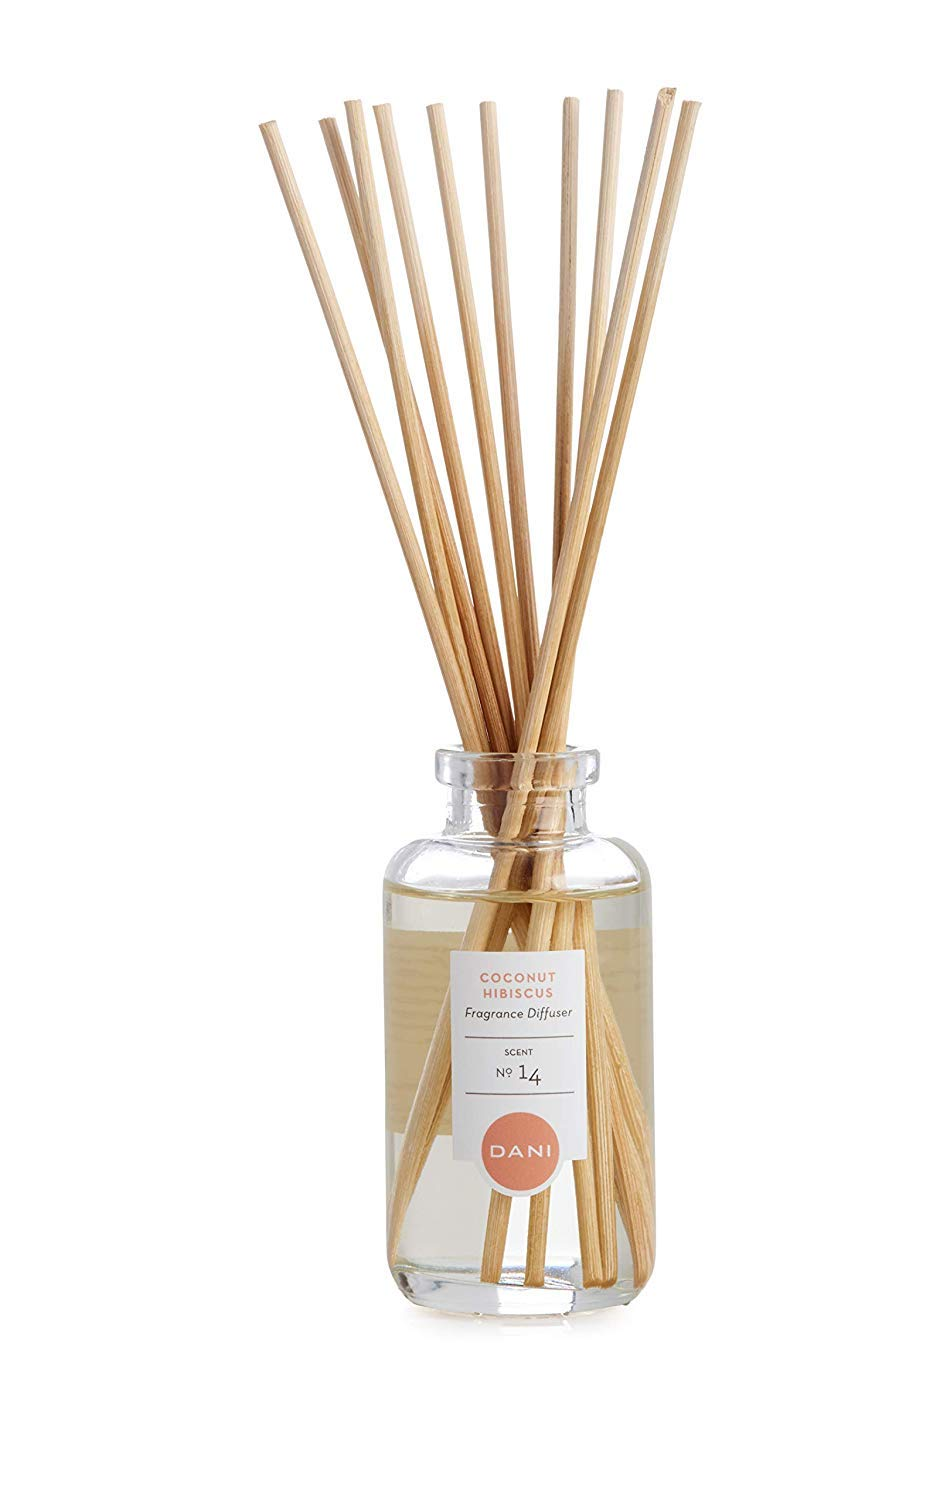 Natural Reed Diffuser Set by DANI Naturals - Tropical Coconut Hibiscus Scent - Aromatherapy Essential Oils - Alcohol Free - 10 Diffuser Sticks - 3.5 Ounce Glass Bottle by DANI (Image #2)